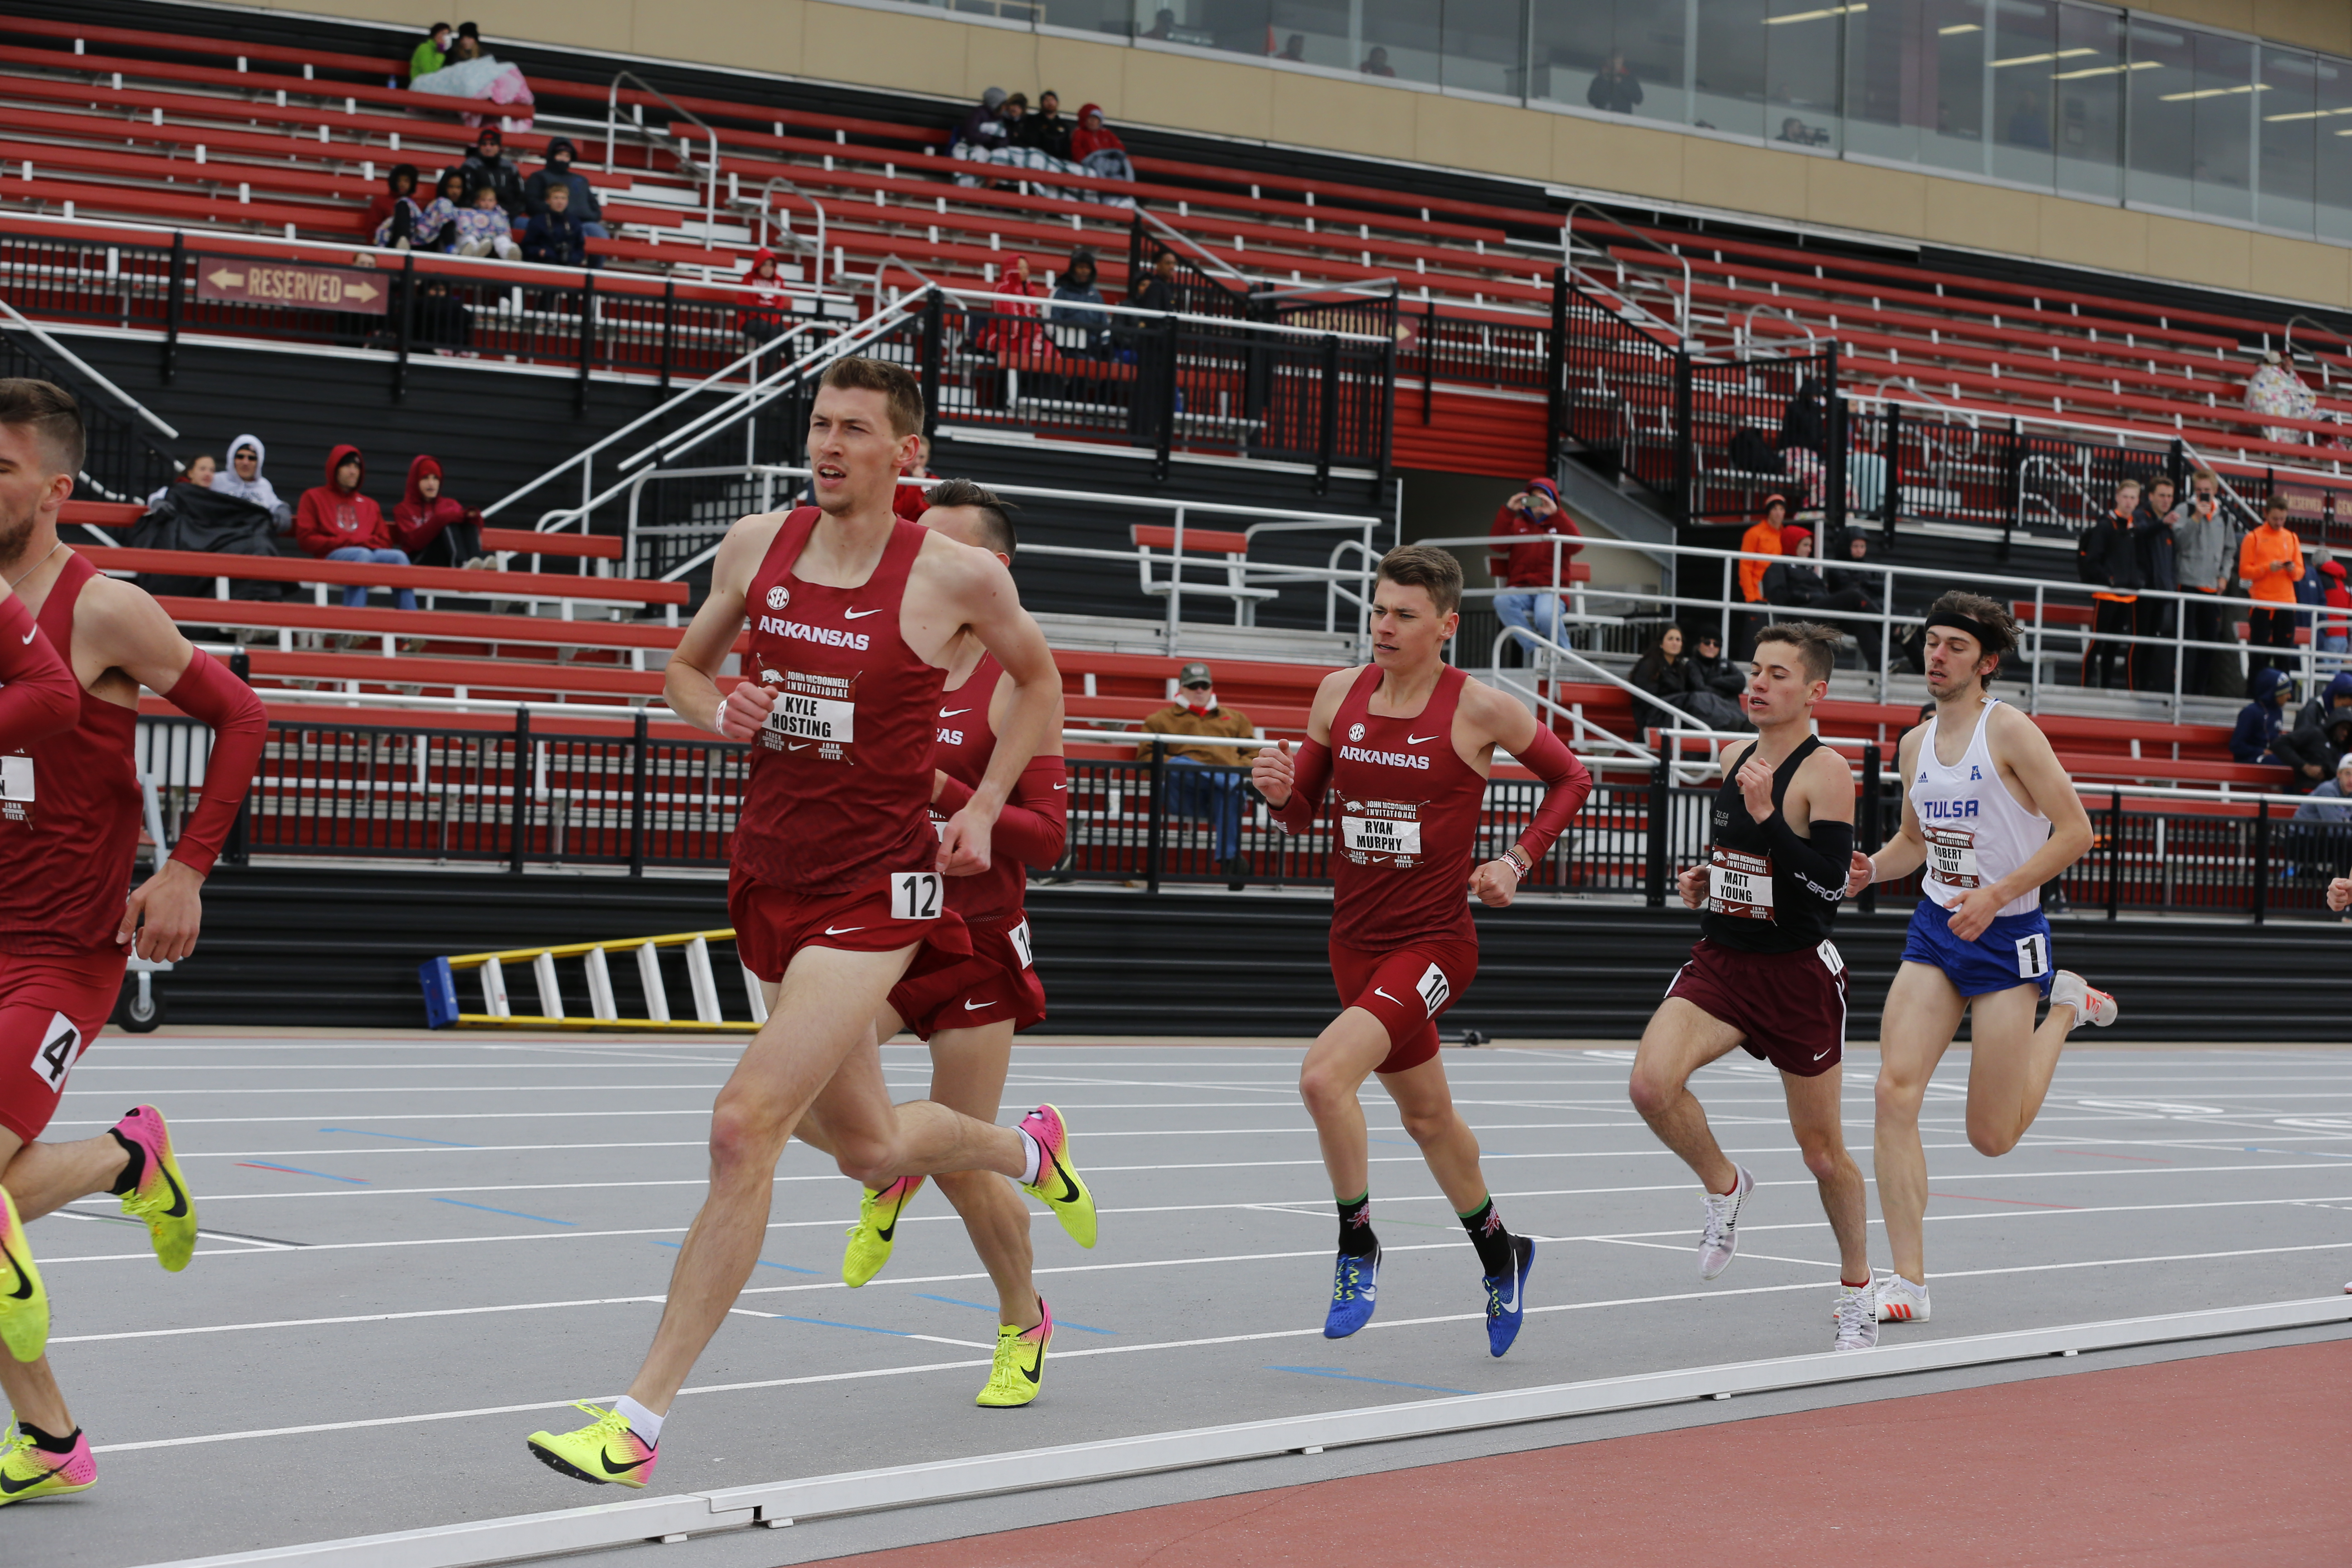 Day One Of Bryan Clay Invite Yields Several Personal Bests